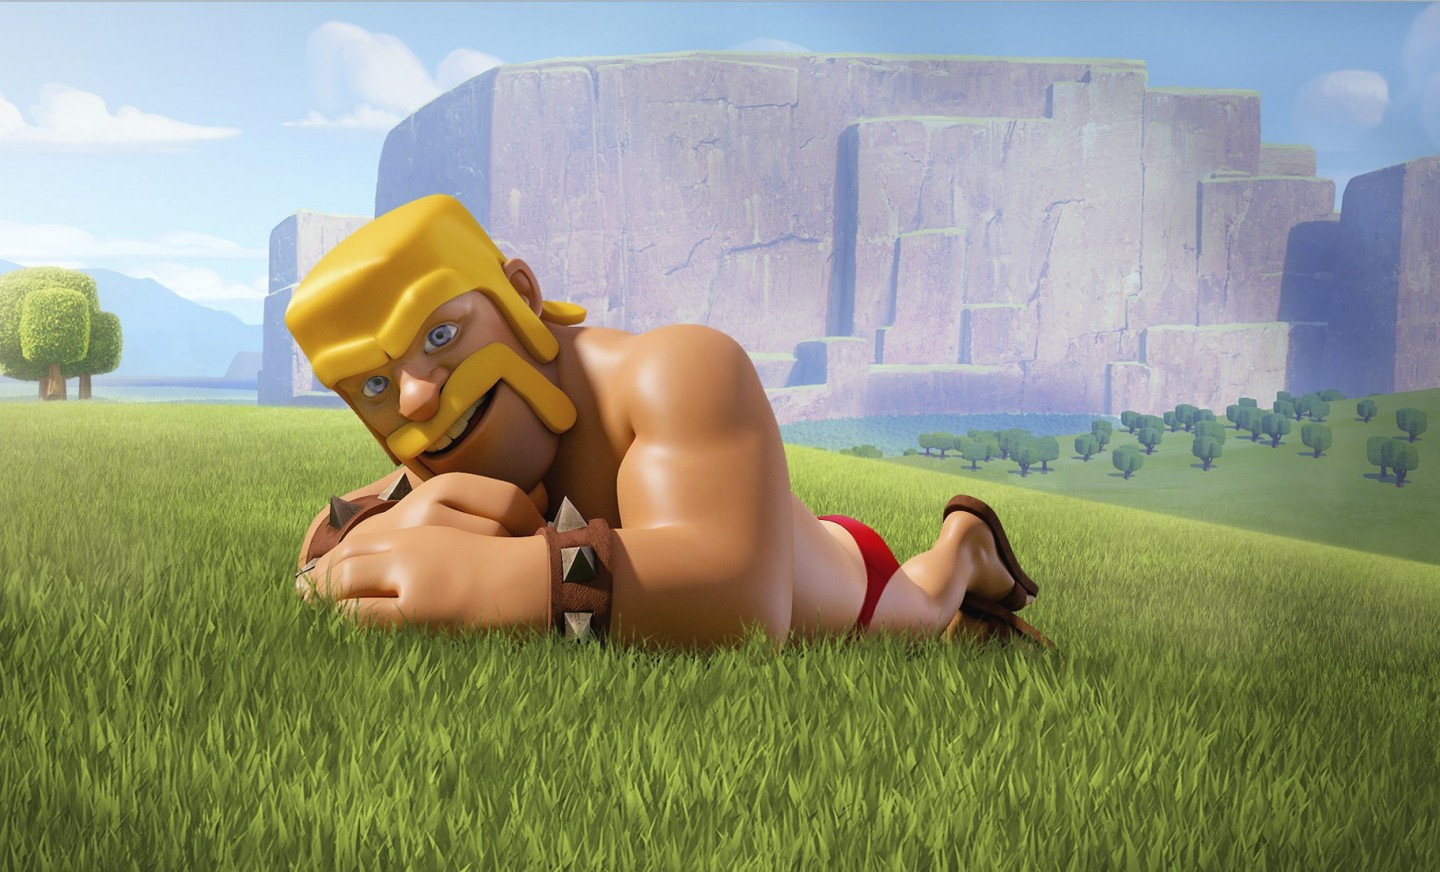 1440x872 > Supercell Wallpapers